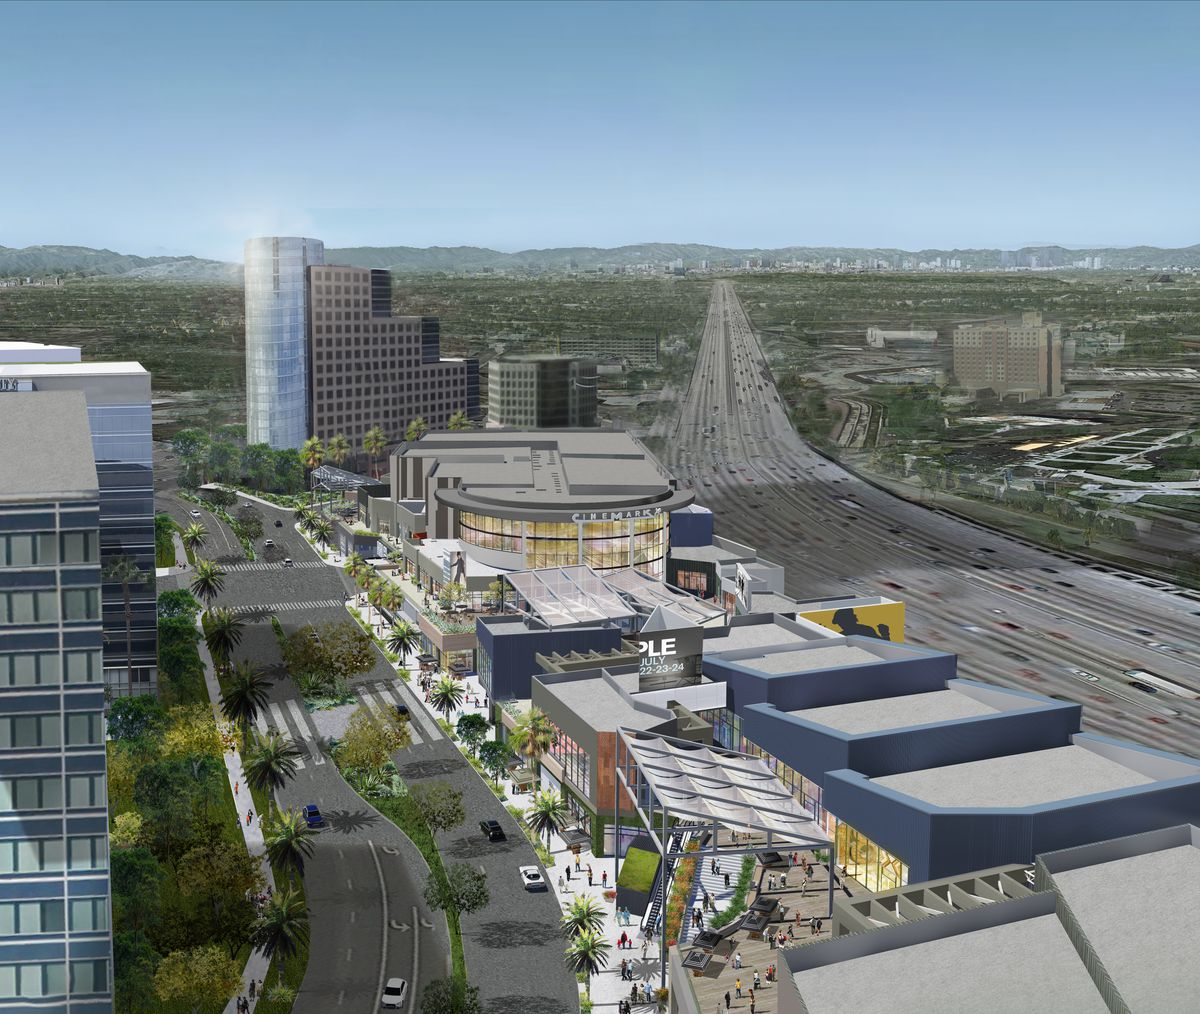 View of complex next to 405 freeway